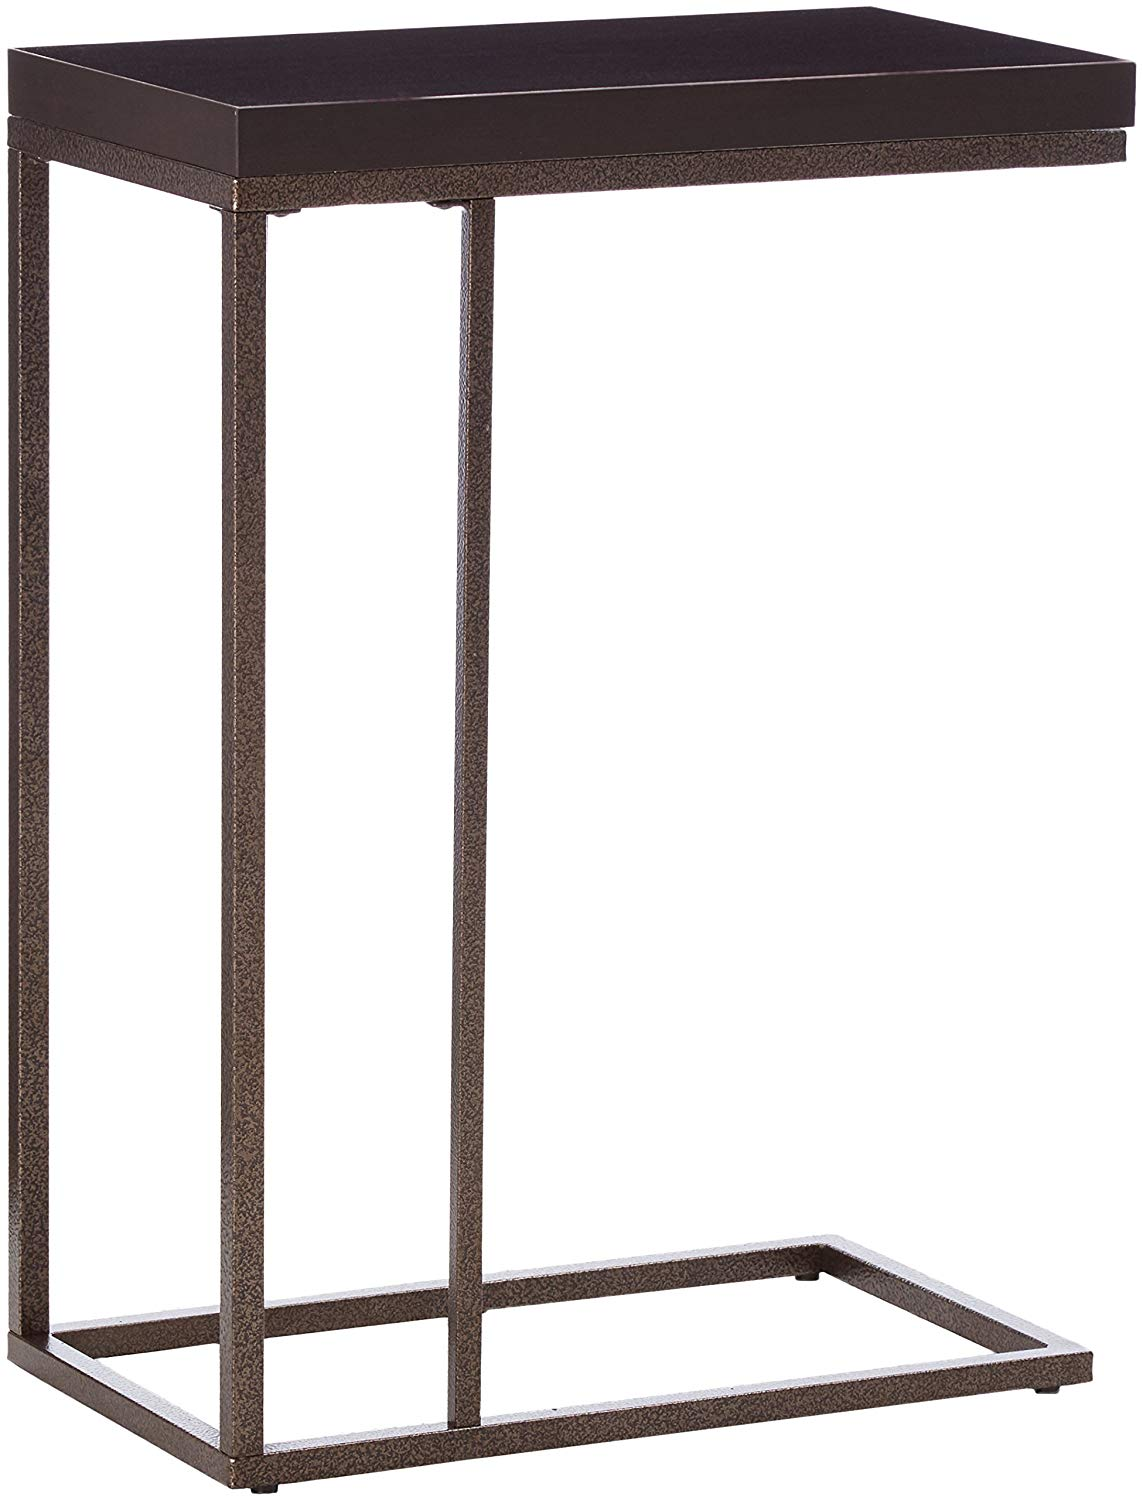 monarch specialties accent table bronze metal top side cappuccino marble kitchen dining country style furniture gold glitter tablecloth sofa with wine rack cherry wood bedroom